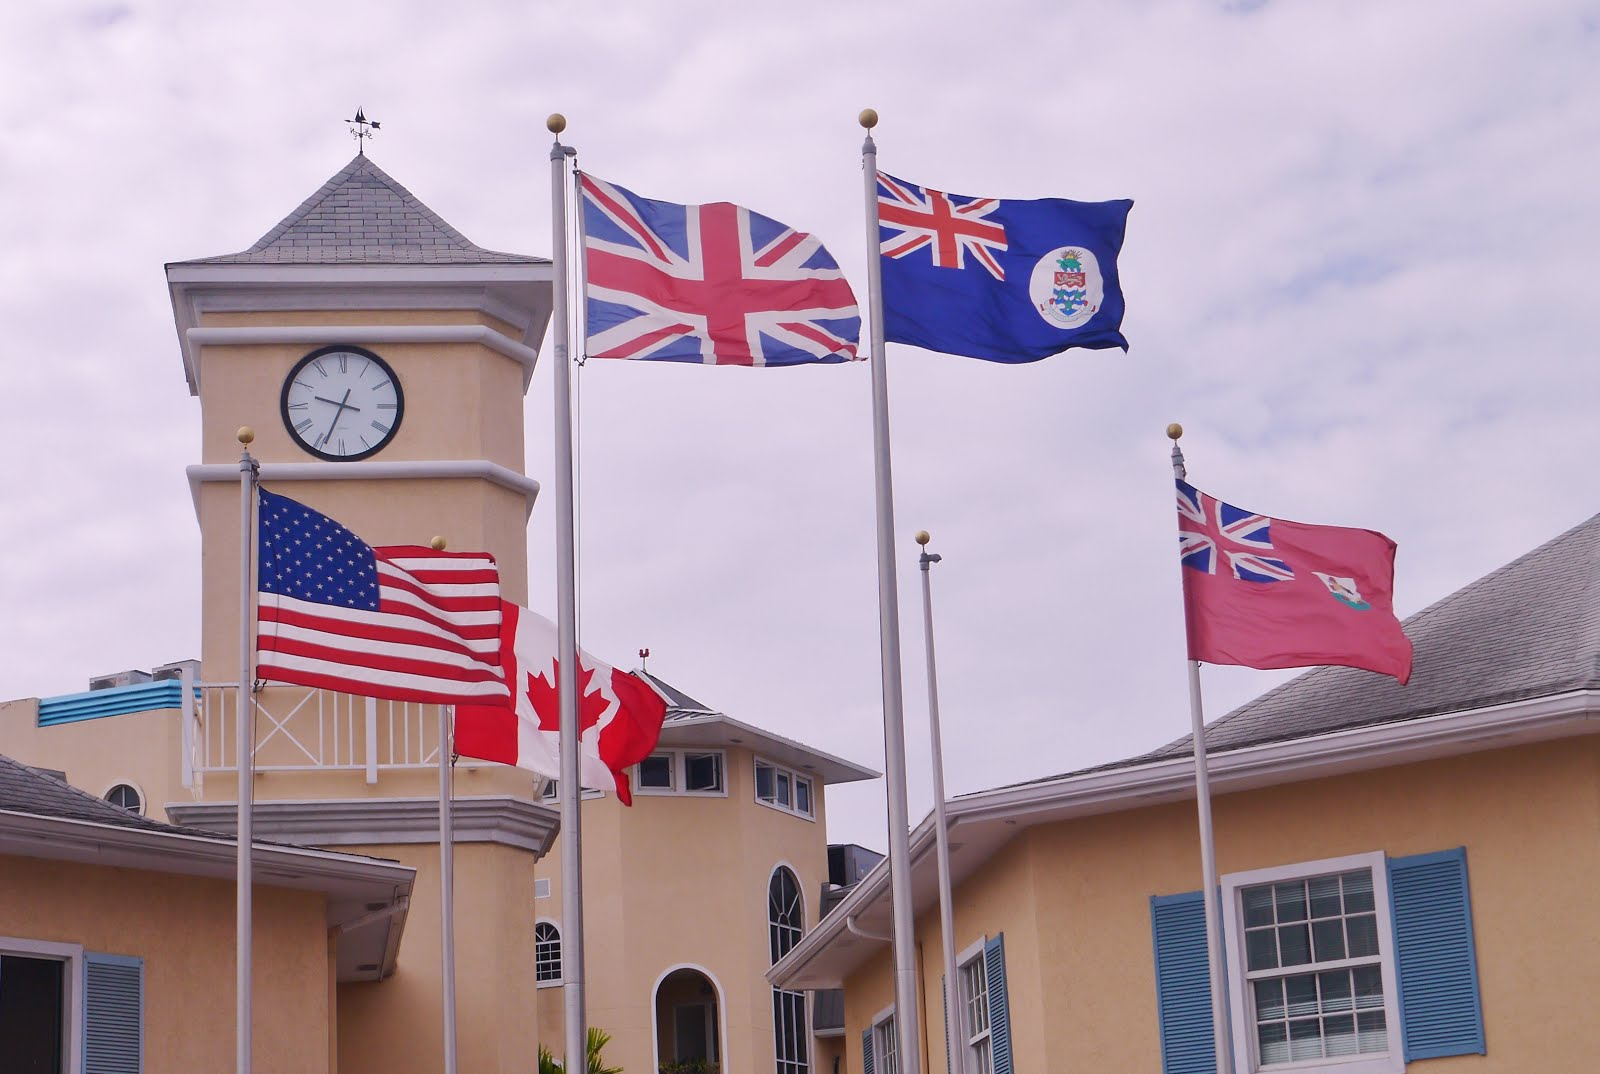 News from The Cayman Islands